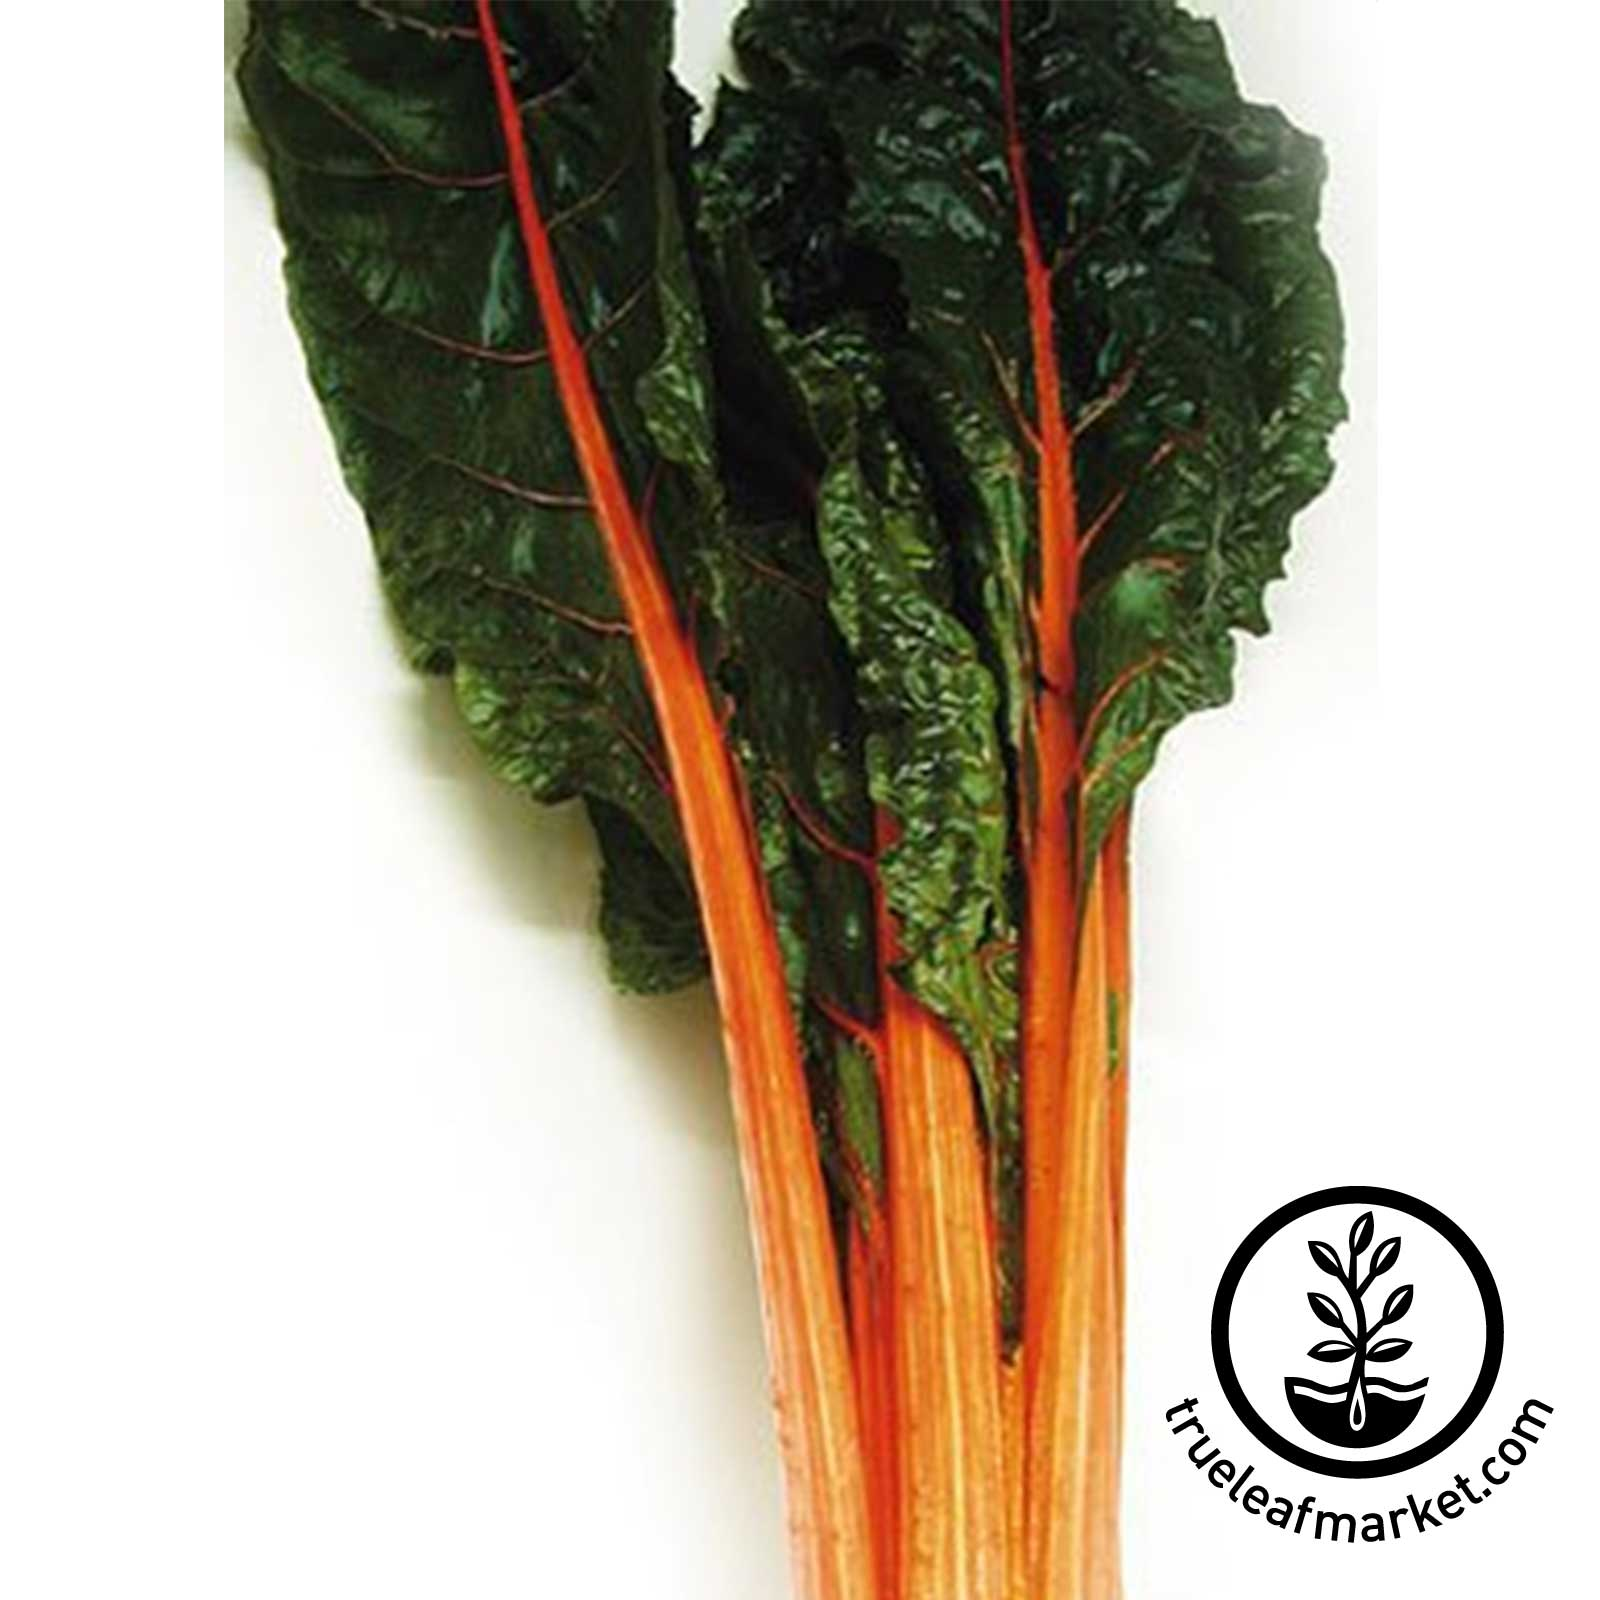 Non-GMO Orange Swiss Chard